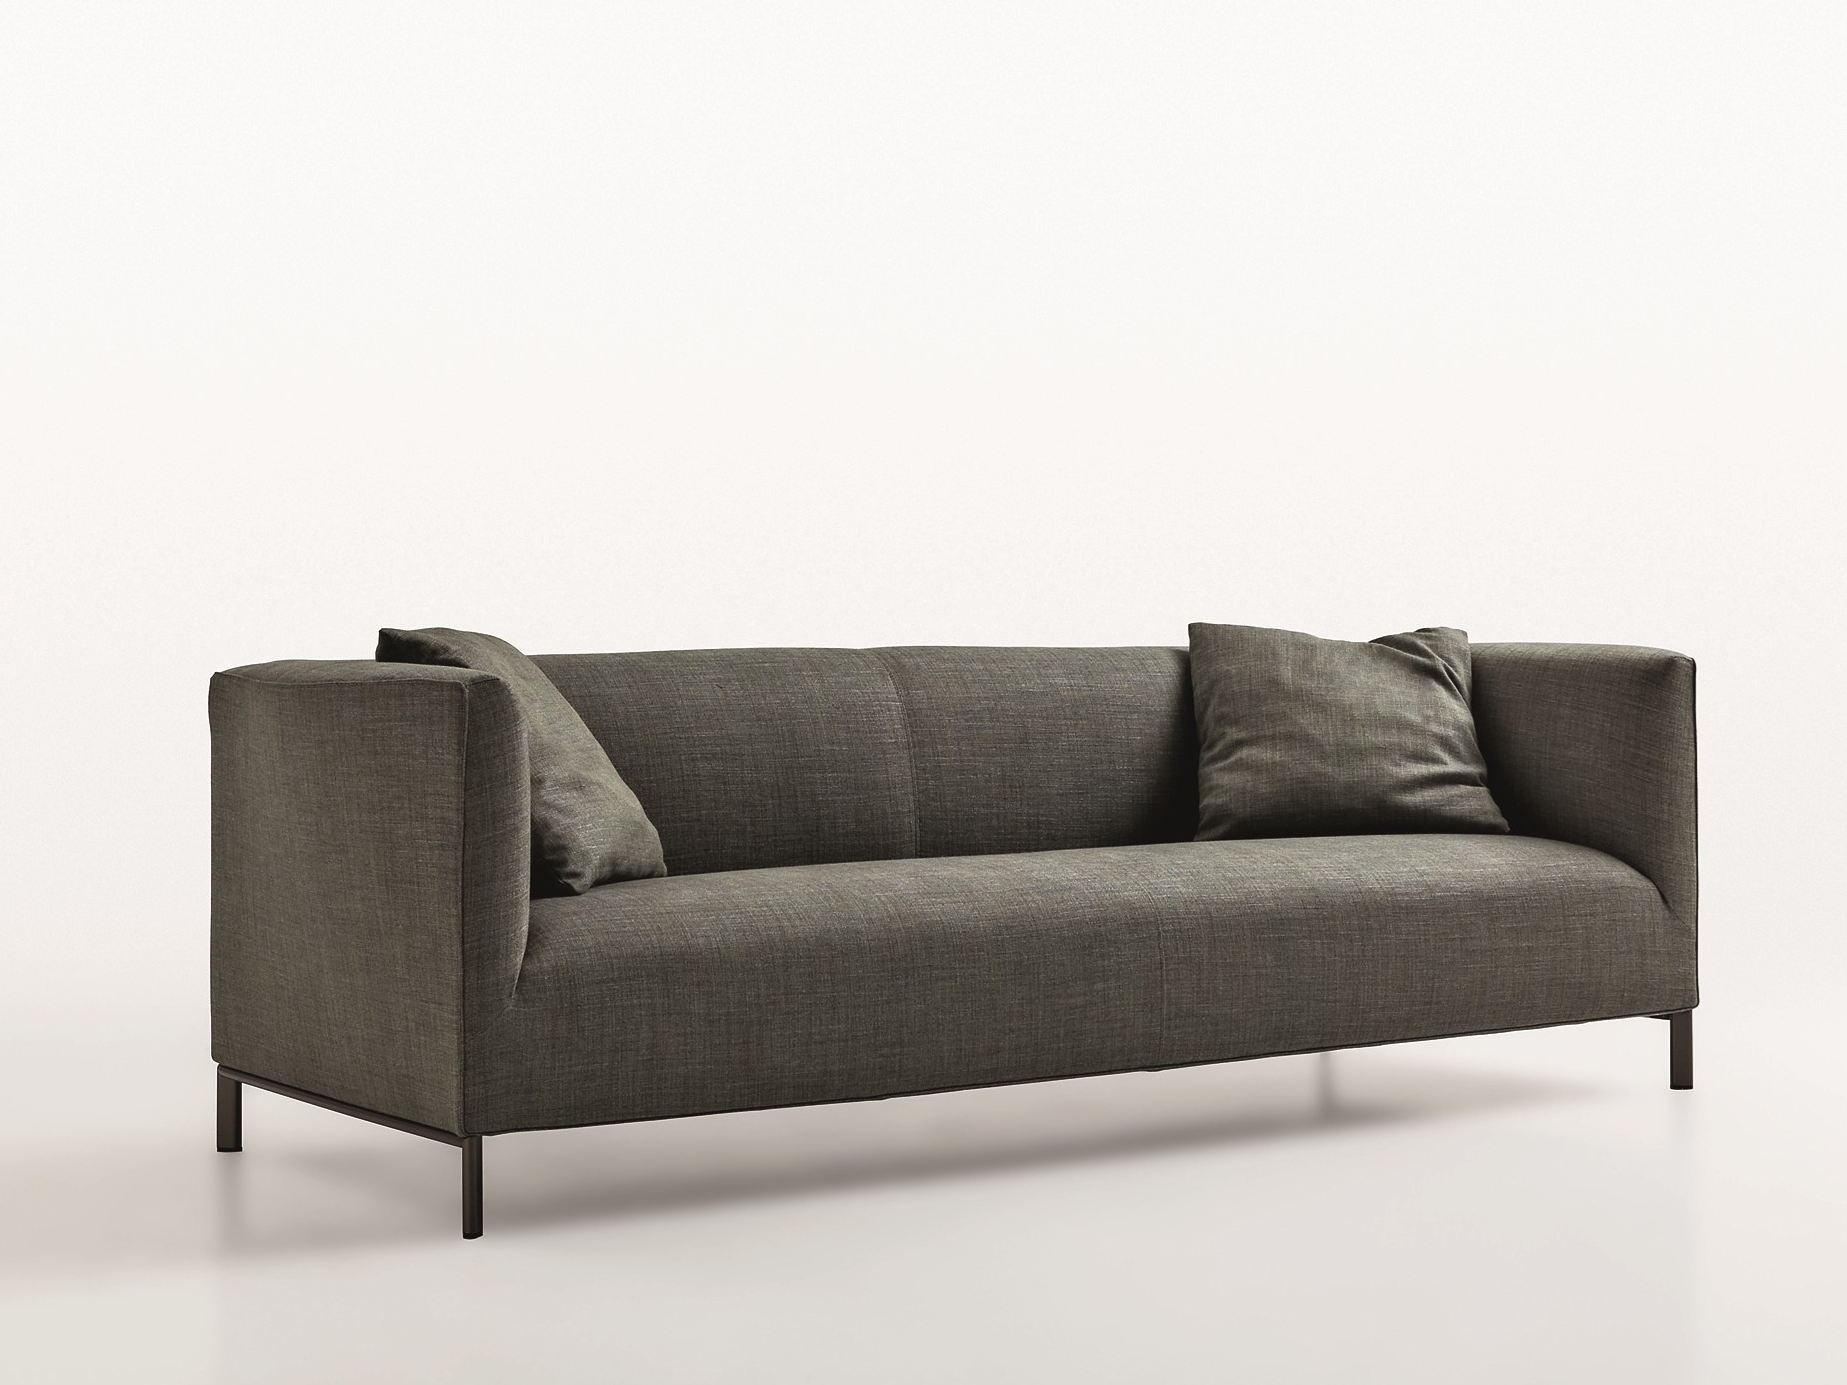 molteni c breeze sofa buy from campbell watson uk. Black Bedroom Furniture Sets. Home Design Ideas